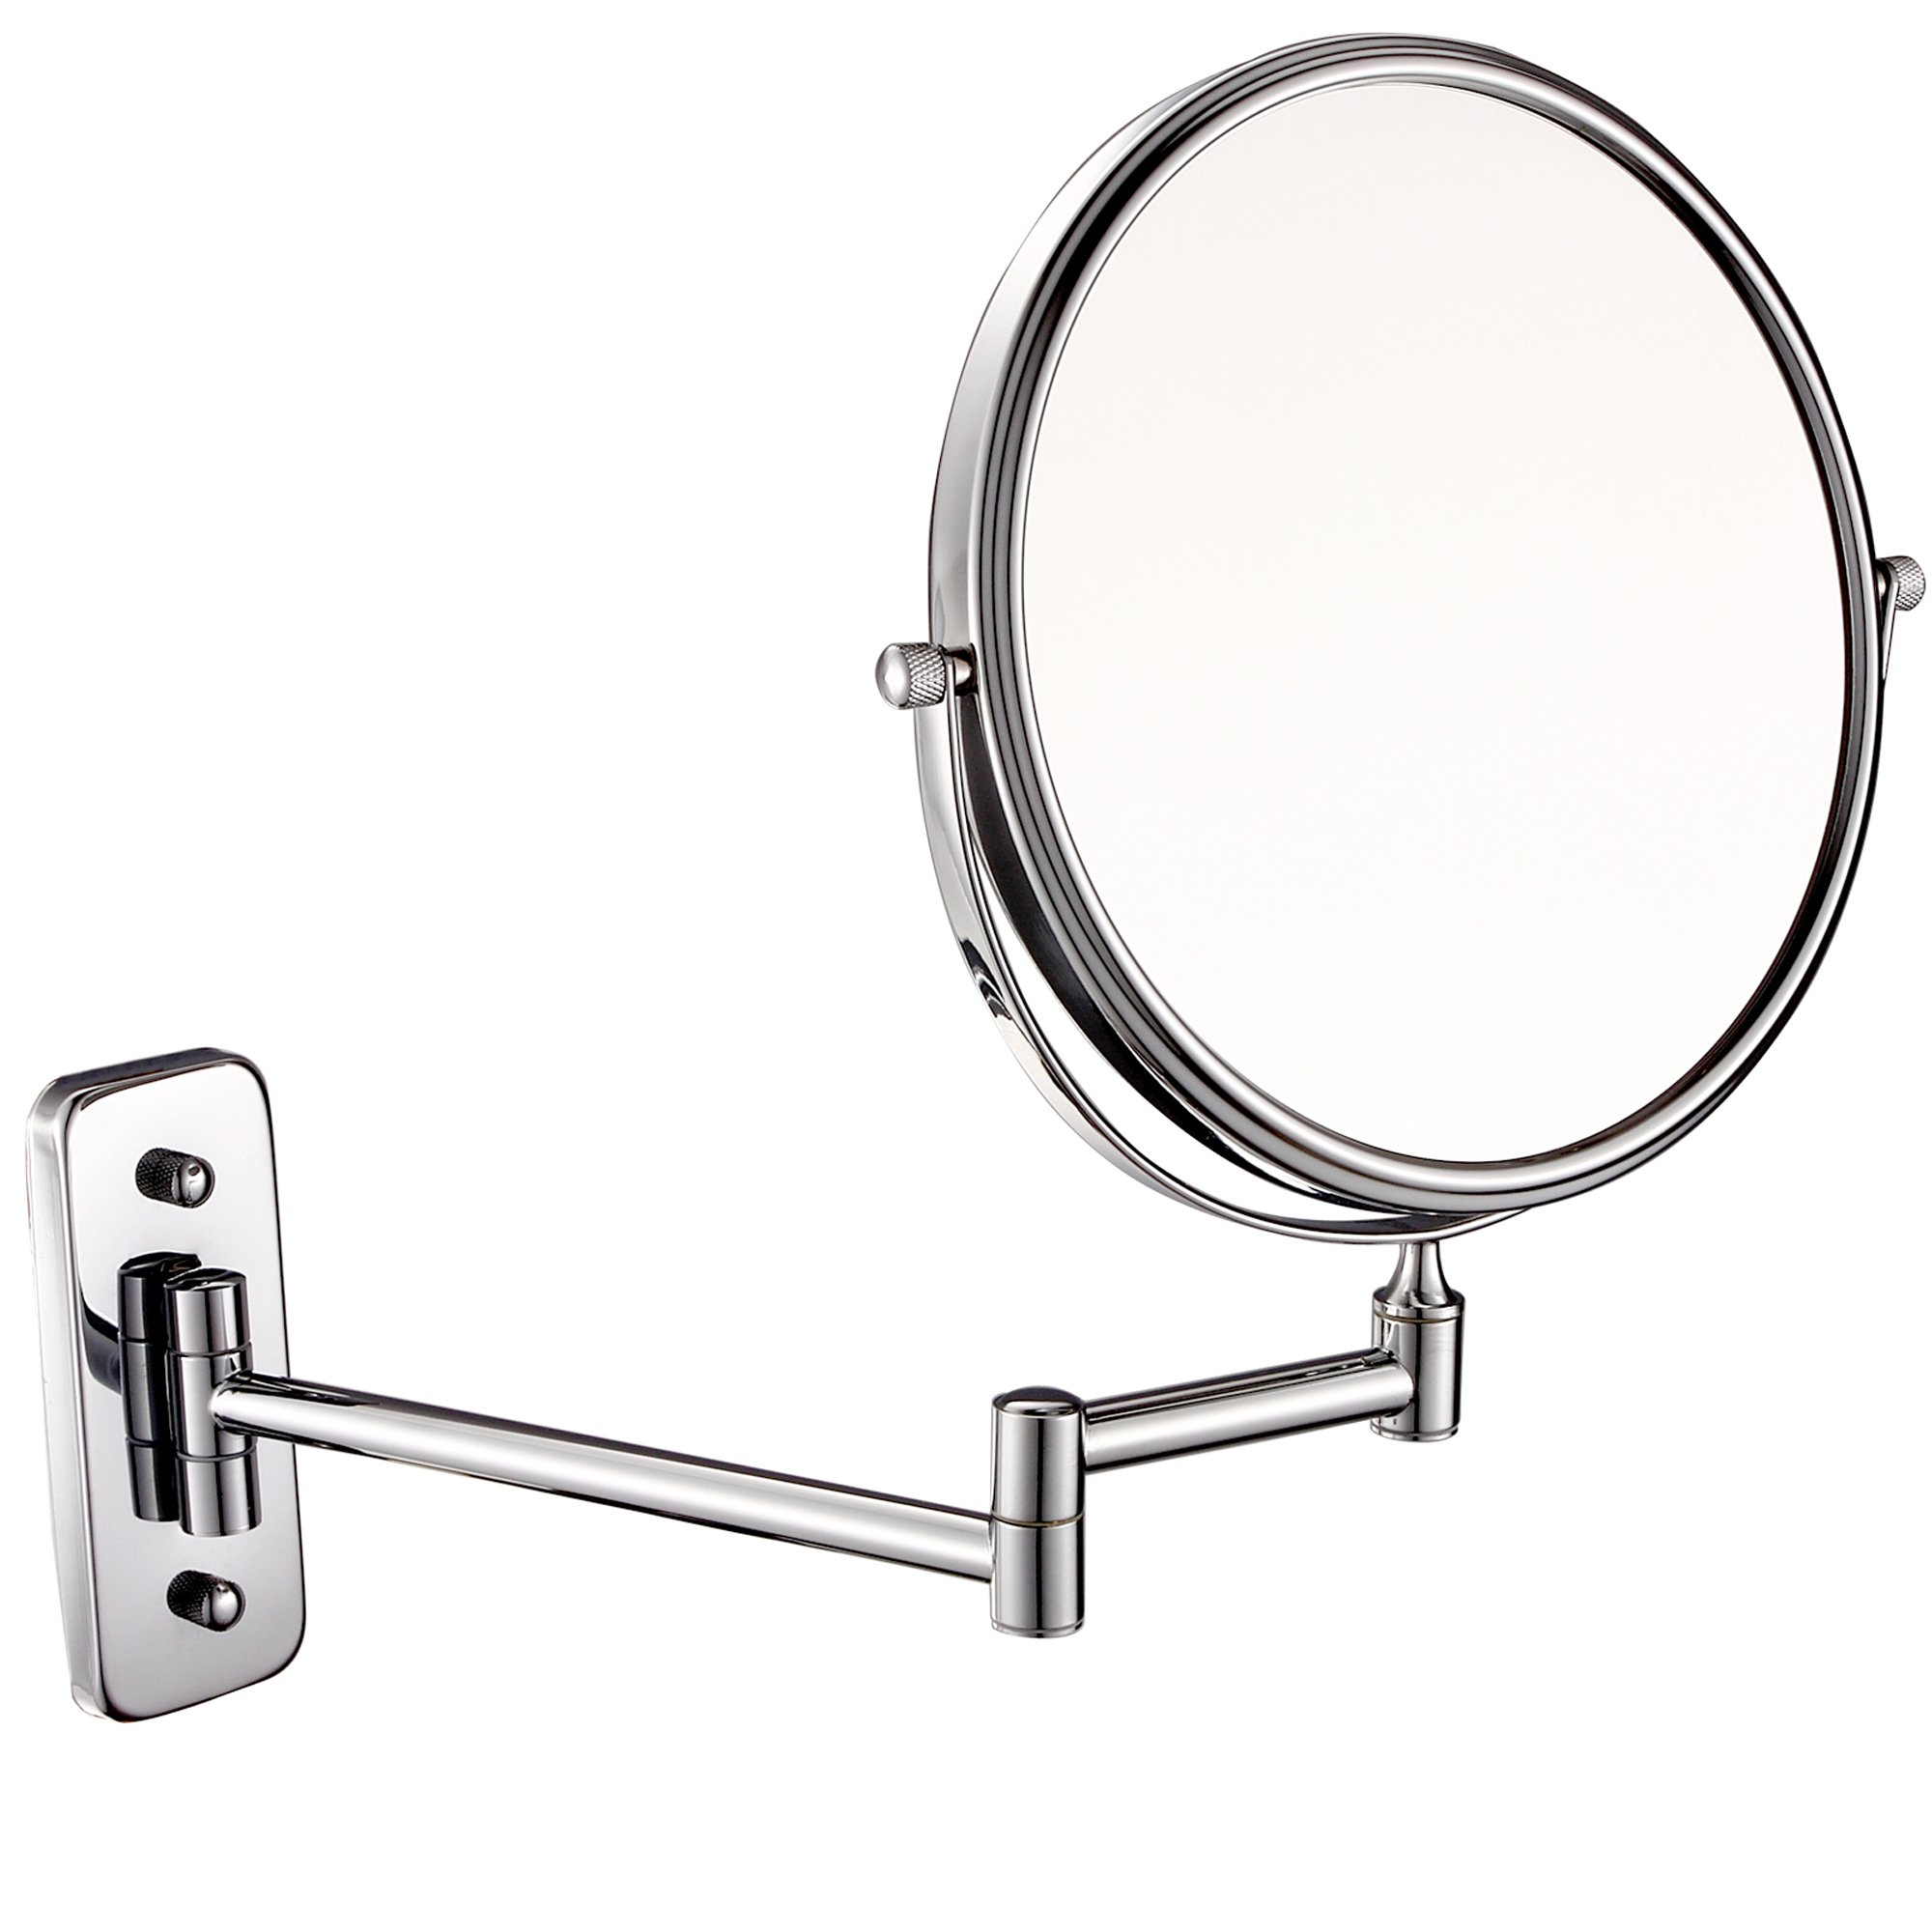 GuRun 8-inch double-sided Wall Mount Makeup Mirror with 10x Magnification,Chrome Finish M1407(8in,10x)